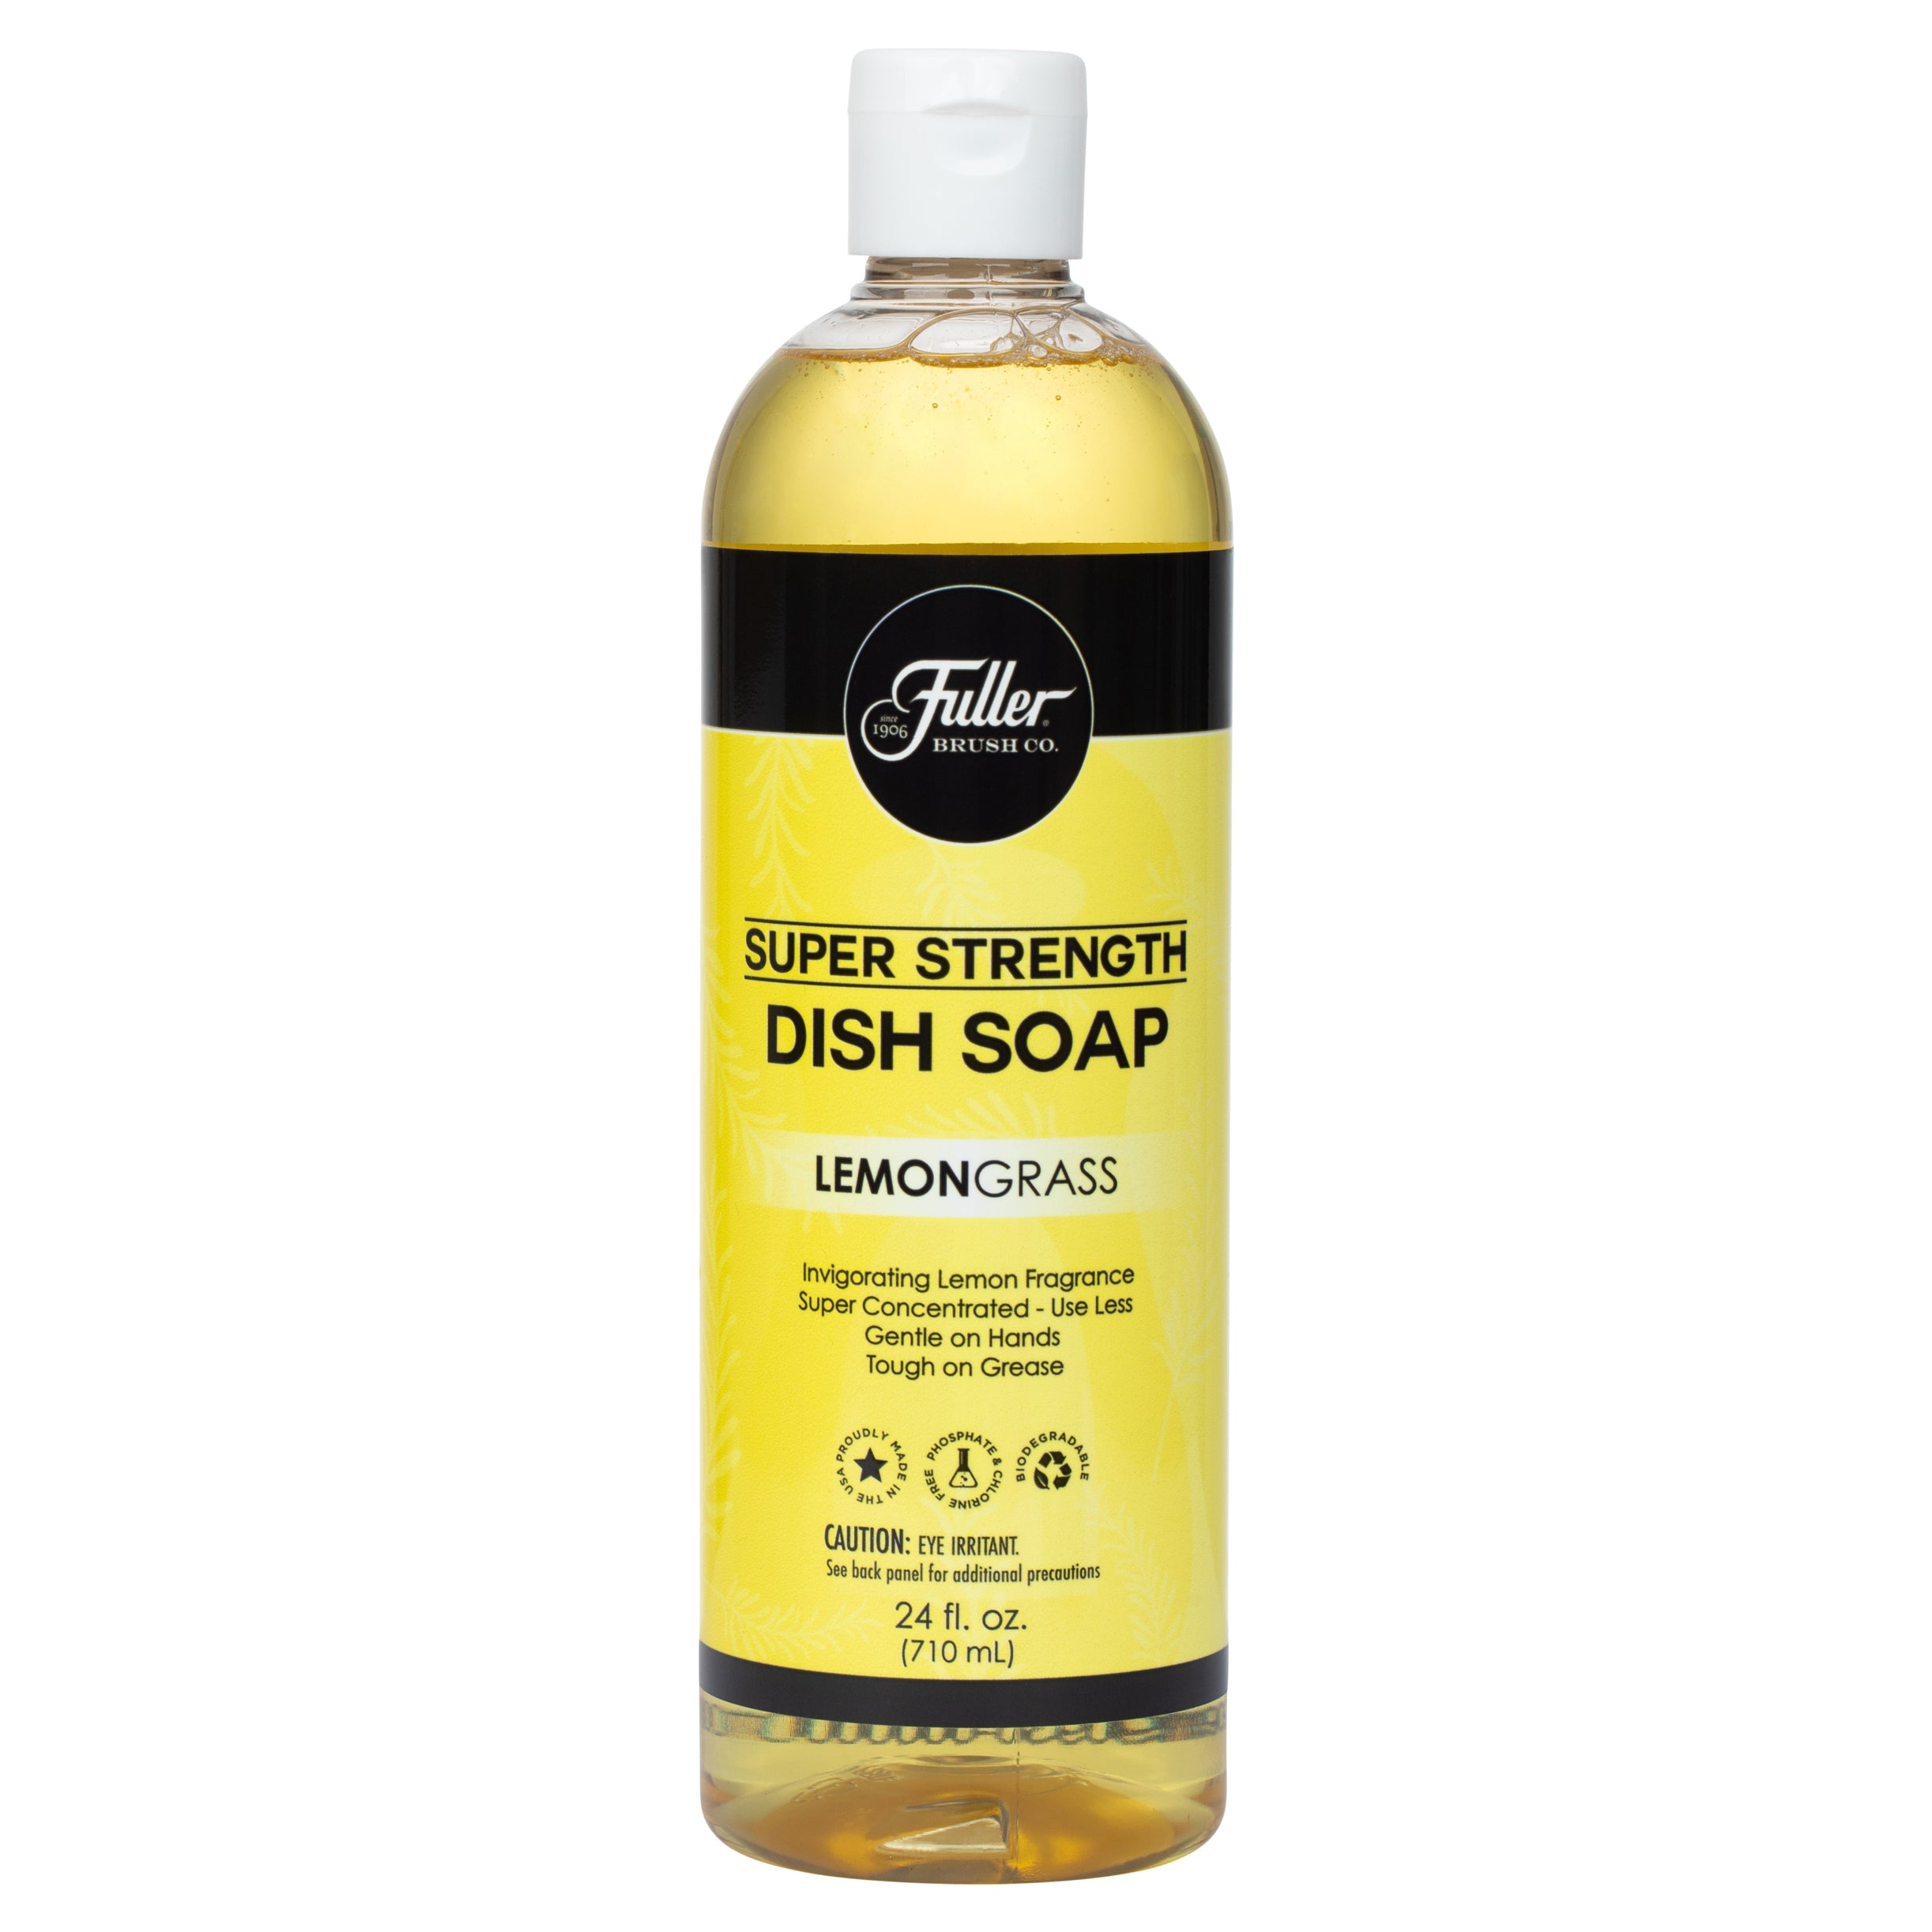 Super Strength Dish Soap – Lemongrass Scent